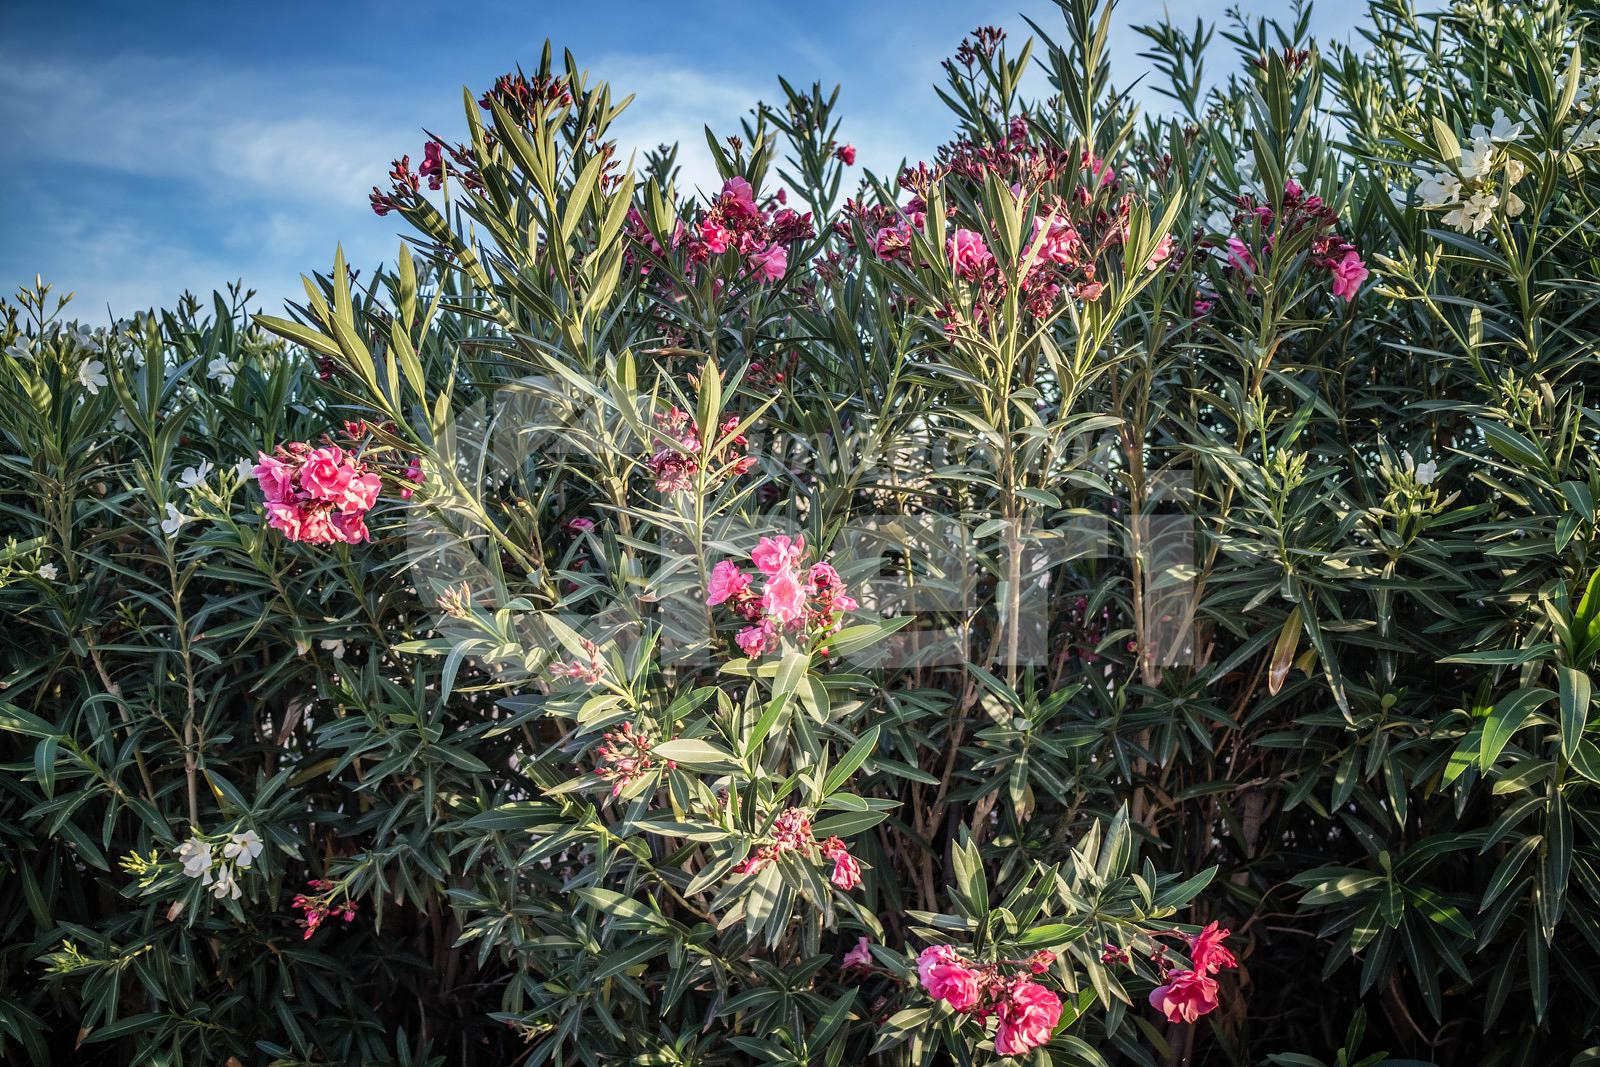 A Nerium Oleander tree in Yuma, Arizona